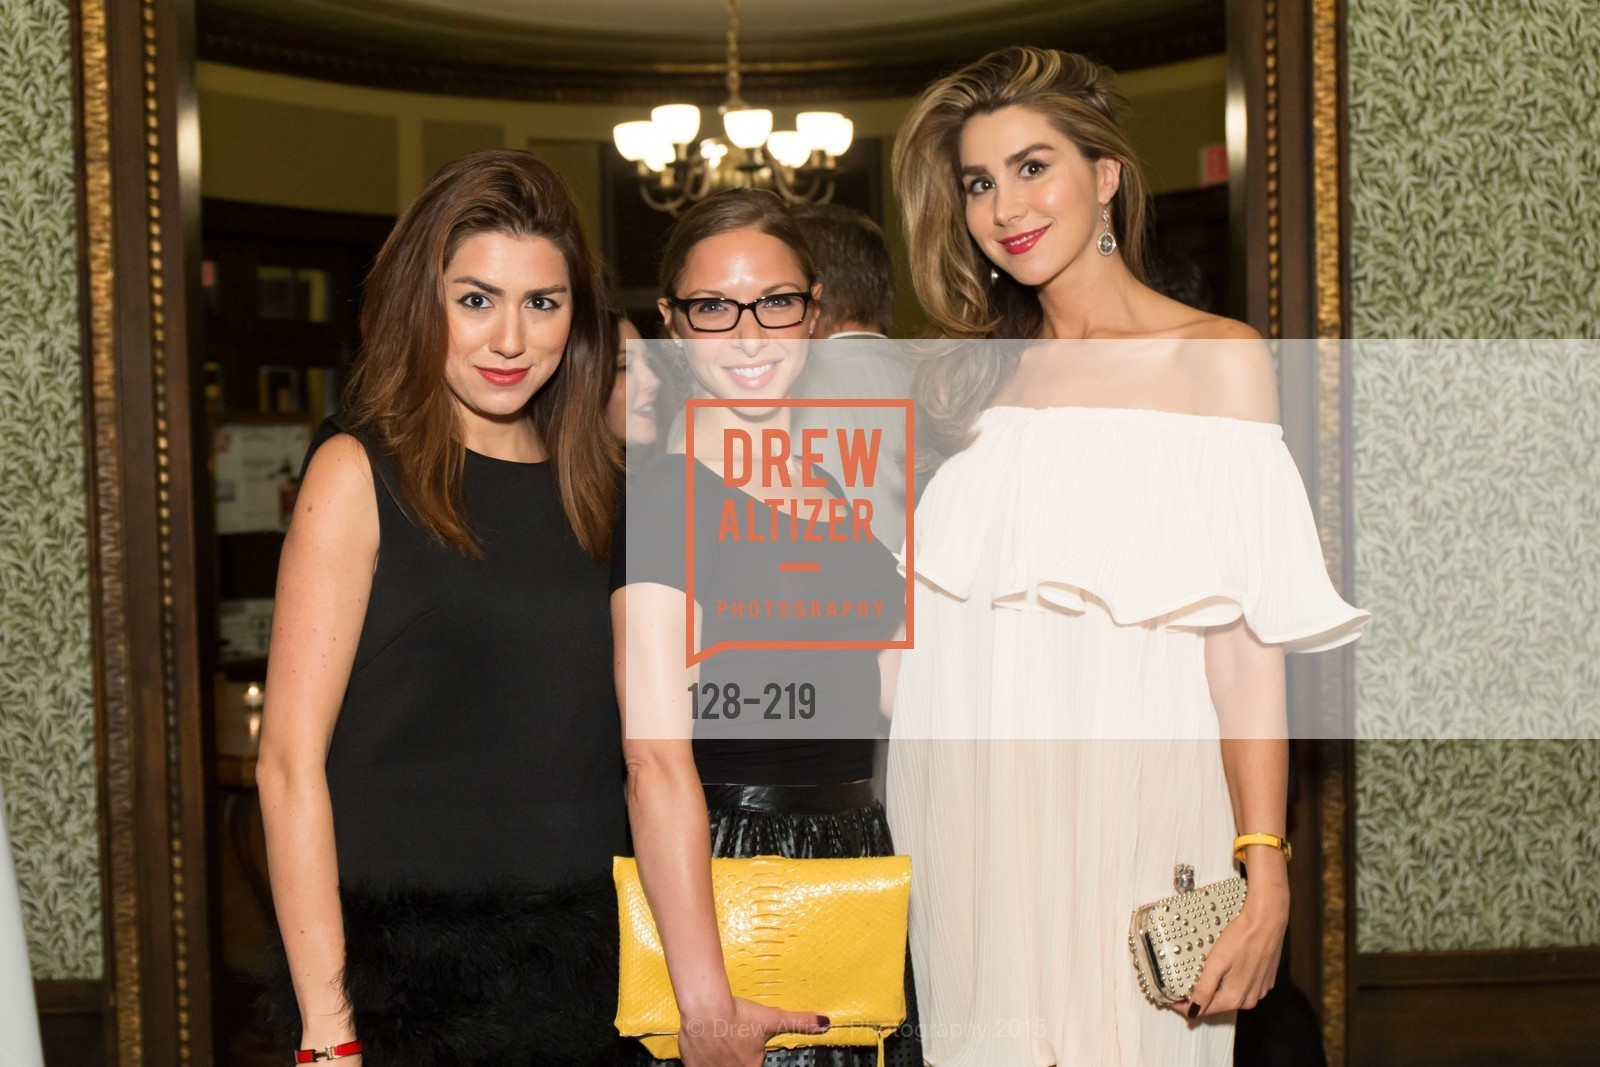 Roya Pakzad, Suzanne Rabicoff, Ronak Pakzad, Champagne Reception & Screening of Million Dollar Listing San Francisco, University Club. 800 Powell St, August 5th, 2015,Drew Altizer, Drew Altizer Photography, full-service event agency, private events, San Francisco photographer, photographer California